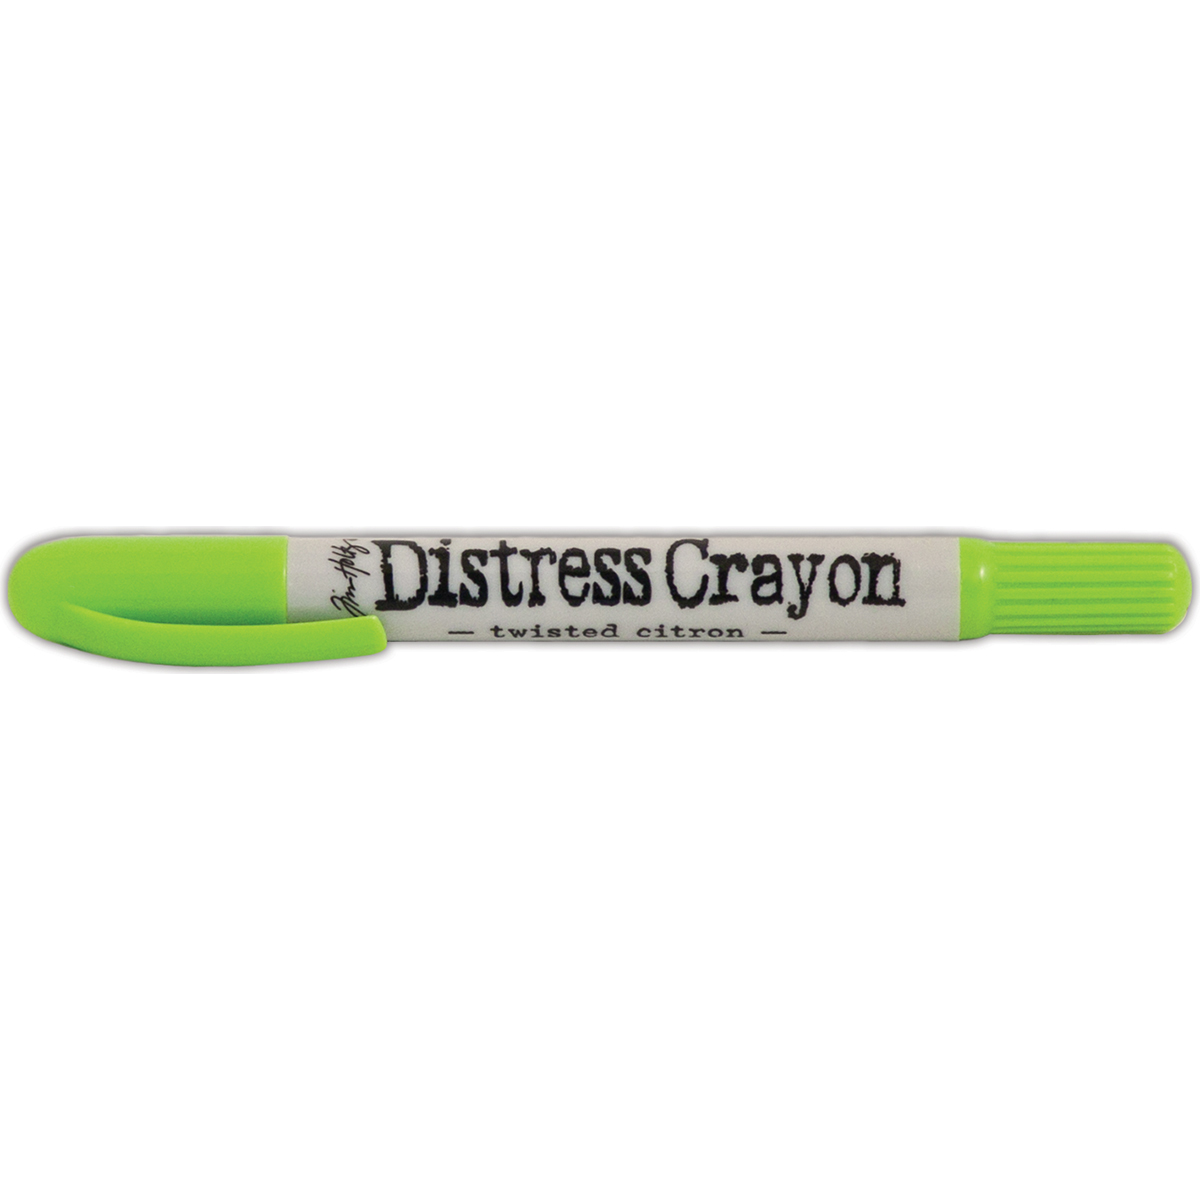 Distress Crayon twisted citron